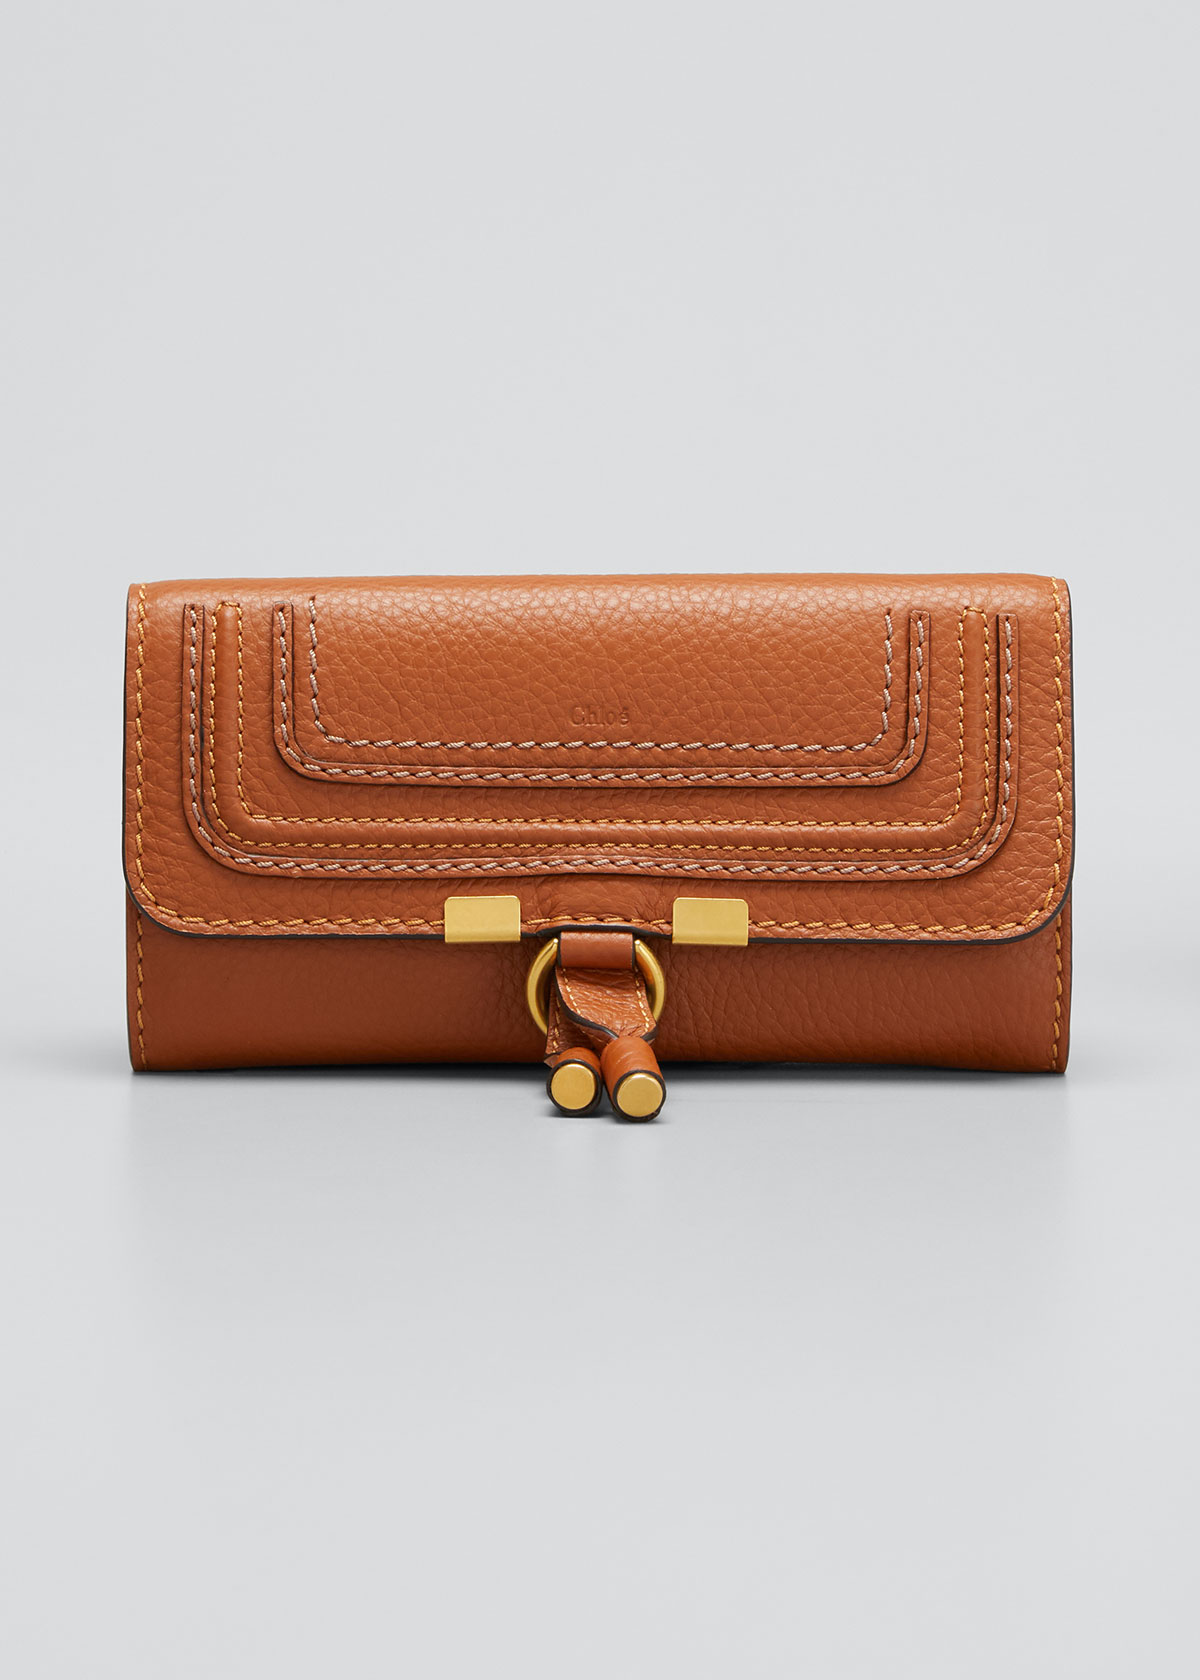 Chloé Wallets MARCIE CONTINENTAL FLAP WALLET, TAN